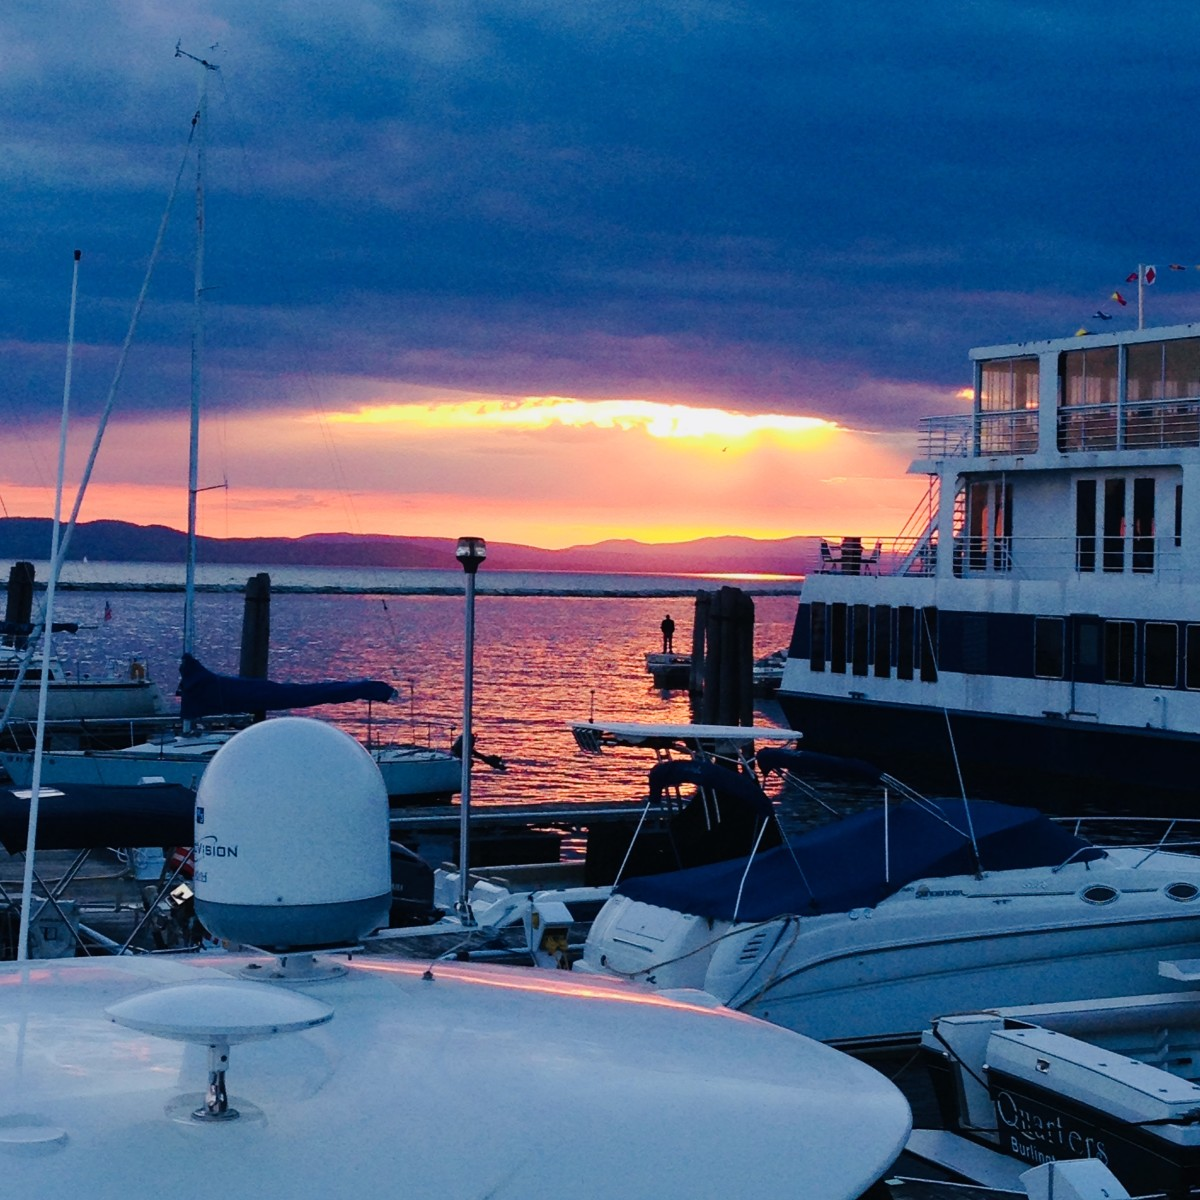 Taking in a gorgeous sunset over the water in Burlington.